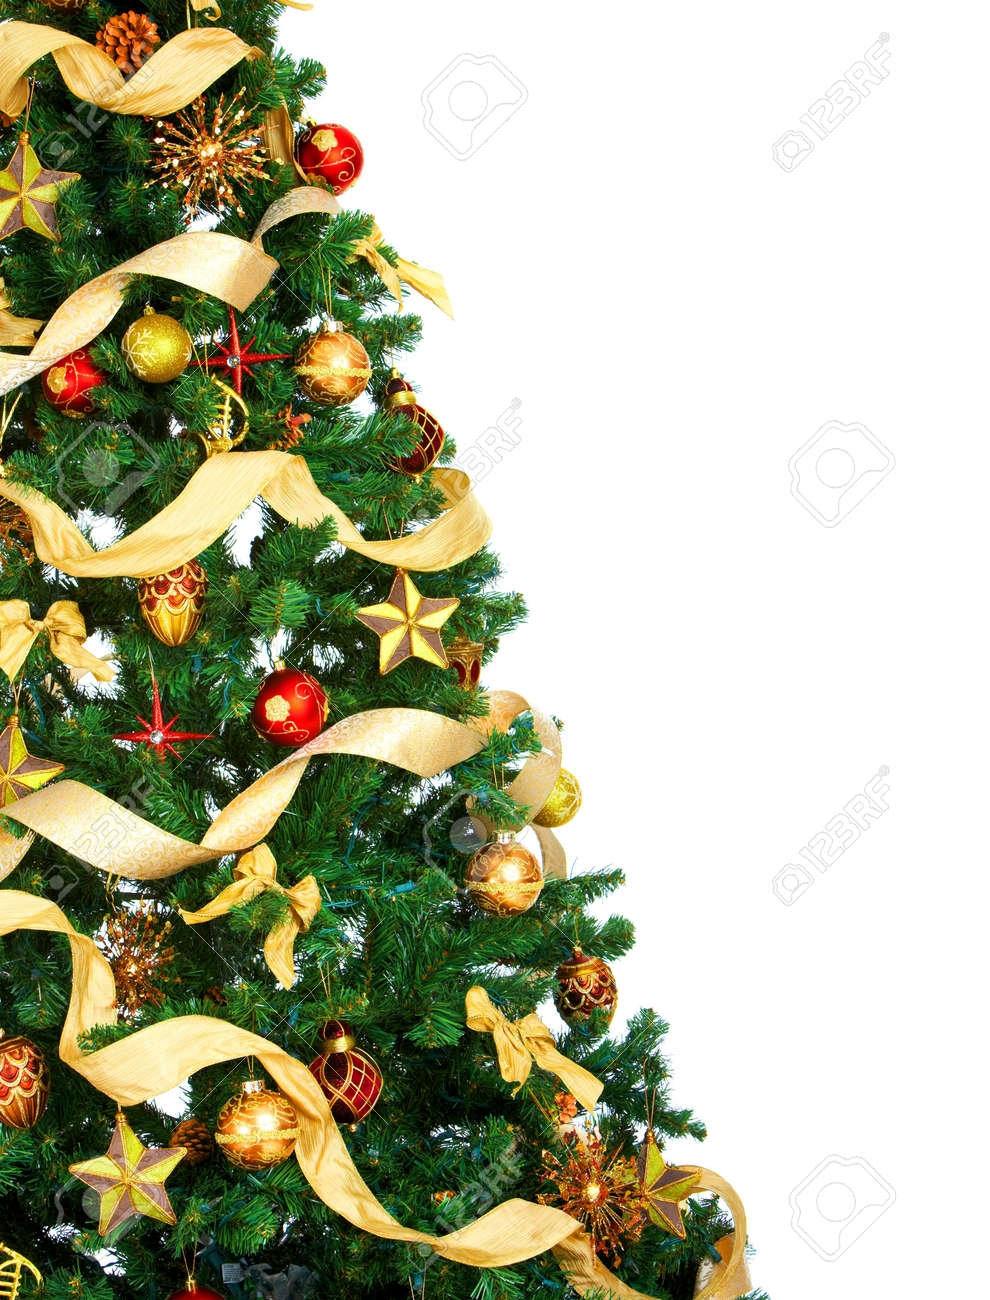 Christmas Tree Background.Christmas Tree And Decorations Over White Background